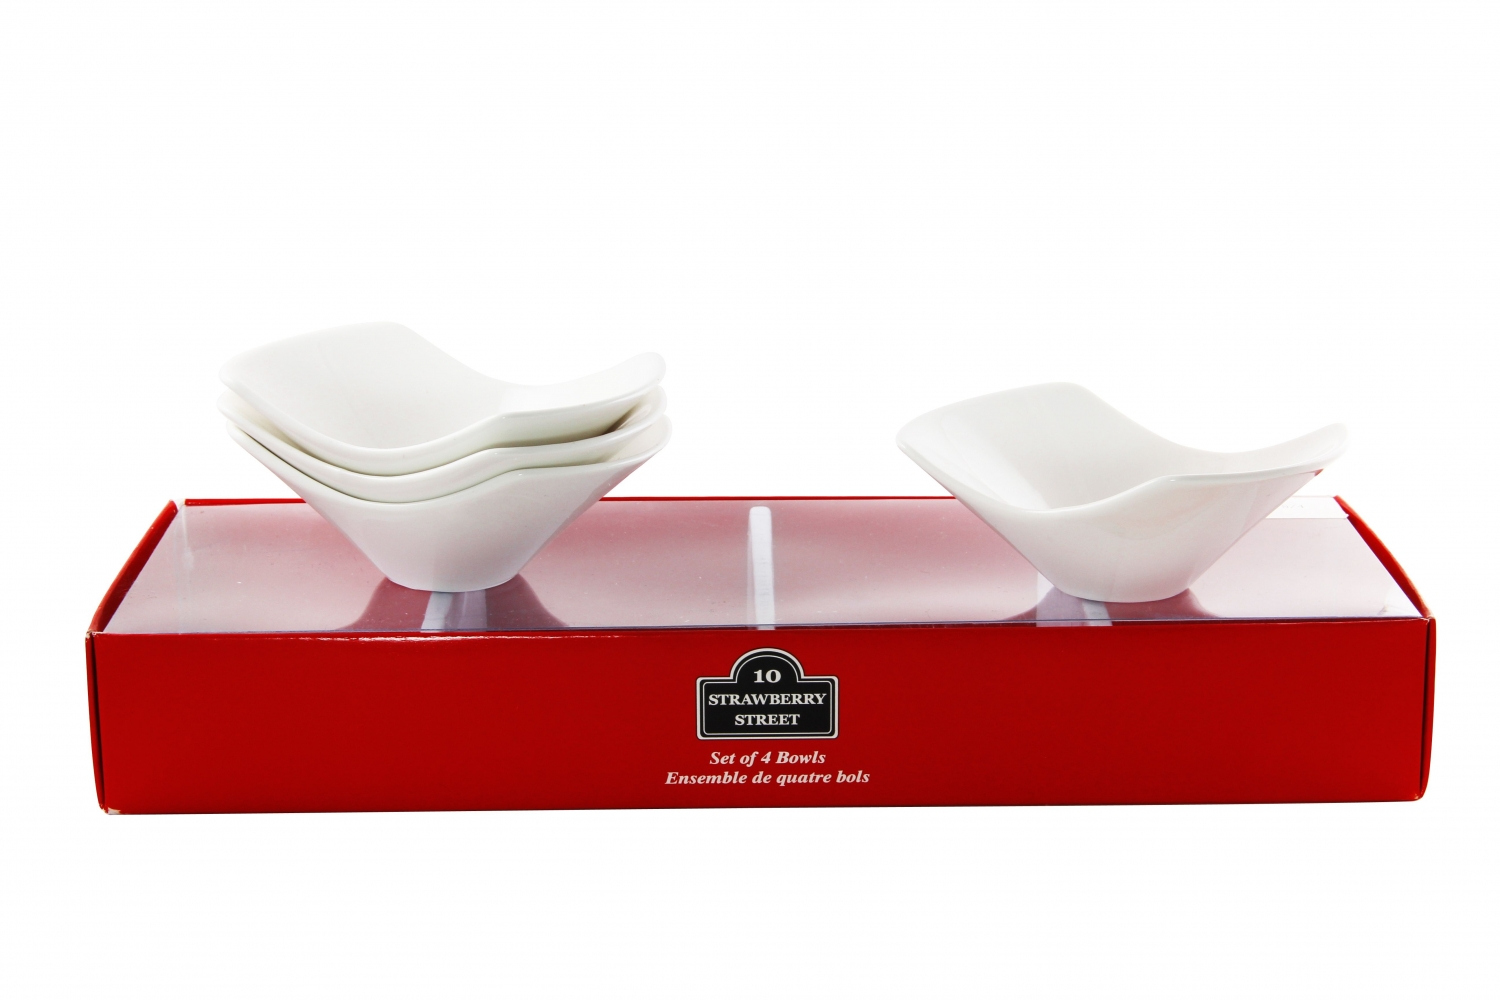 10 Strawberry Street TBX-SAMBWL4 2 oz. Square Cereal Bowl, Set of 4